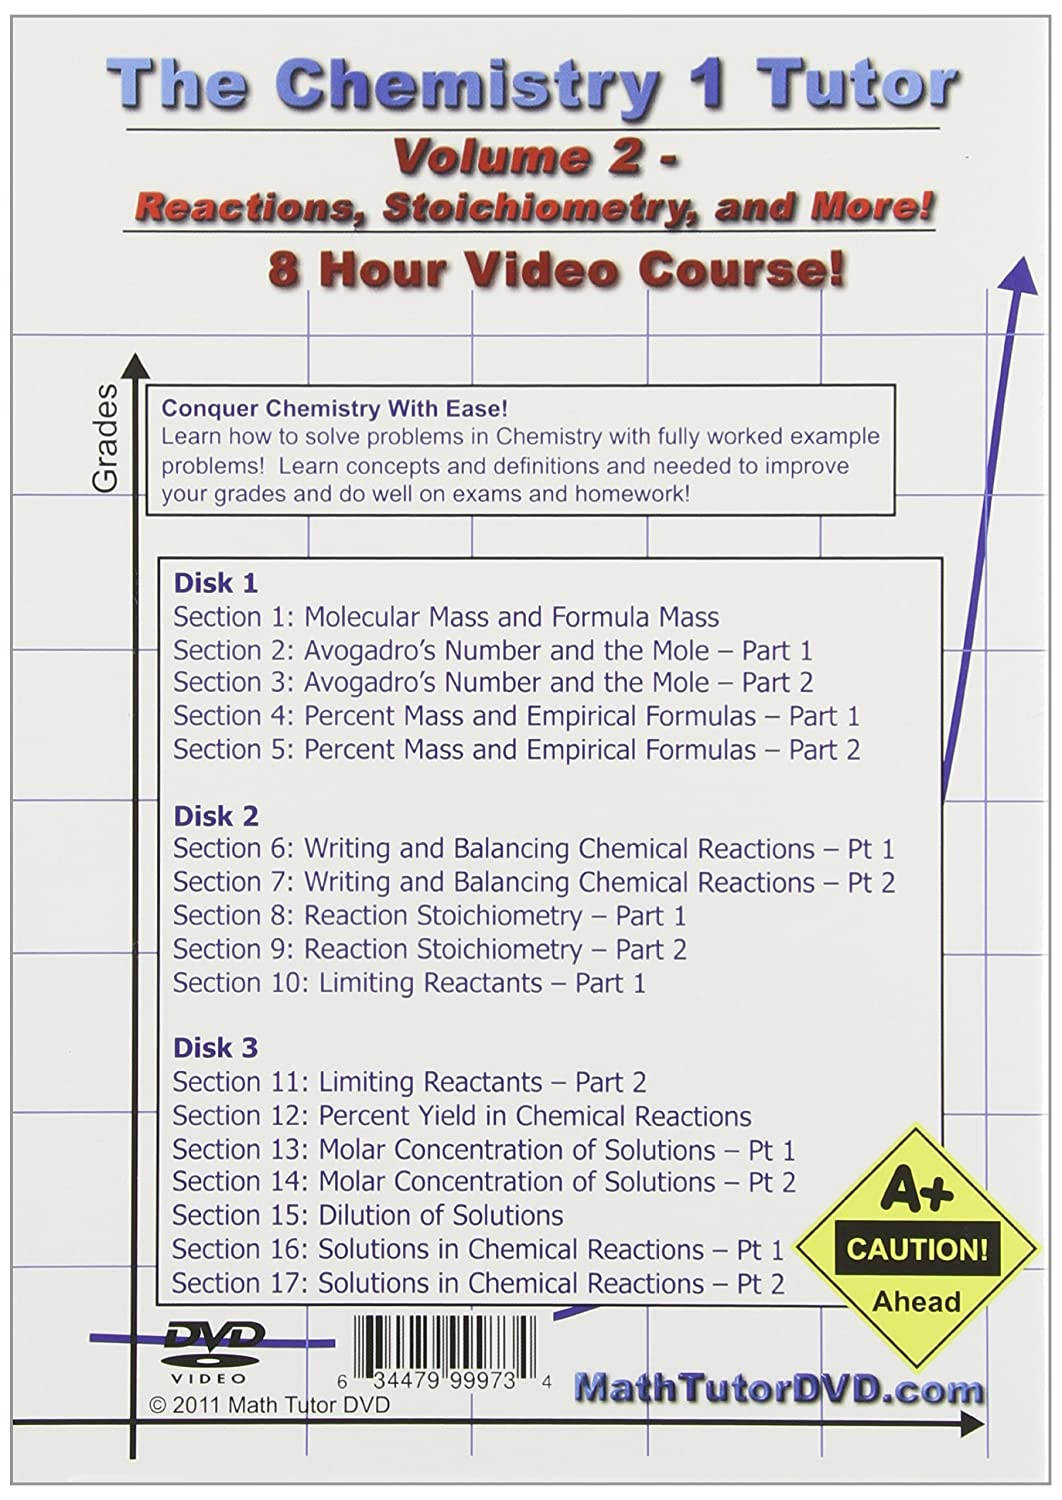 com the chemistry 1 tutor volume 2 jason gibson  com the chemistry 1 tutor volume 2 jason gibson mathtutordvd com movies tv